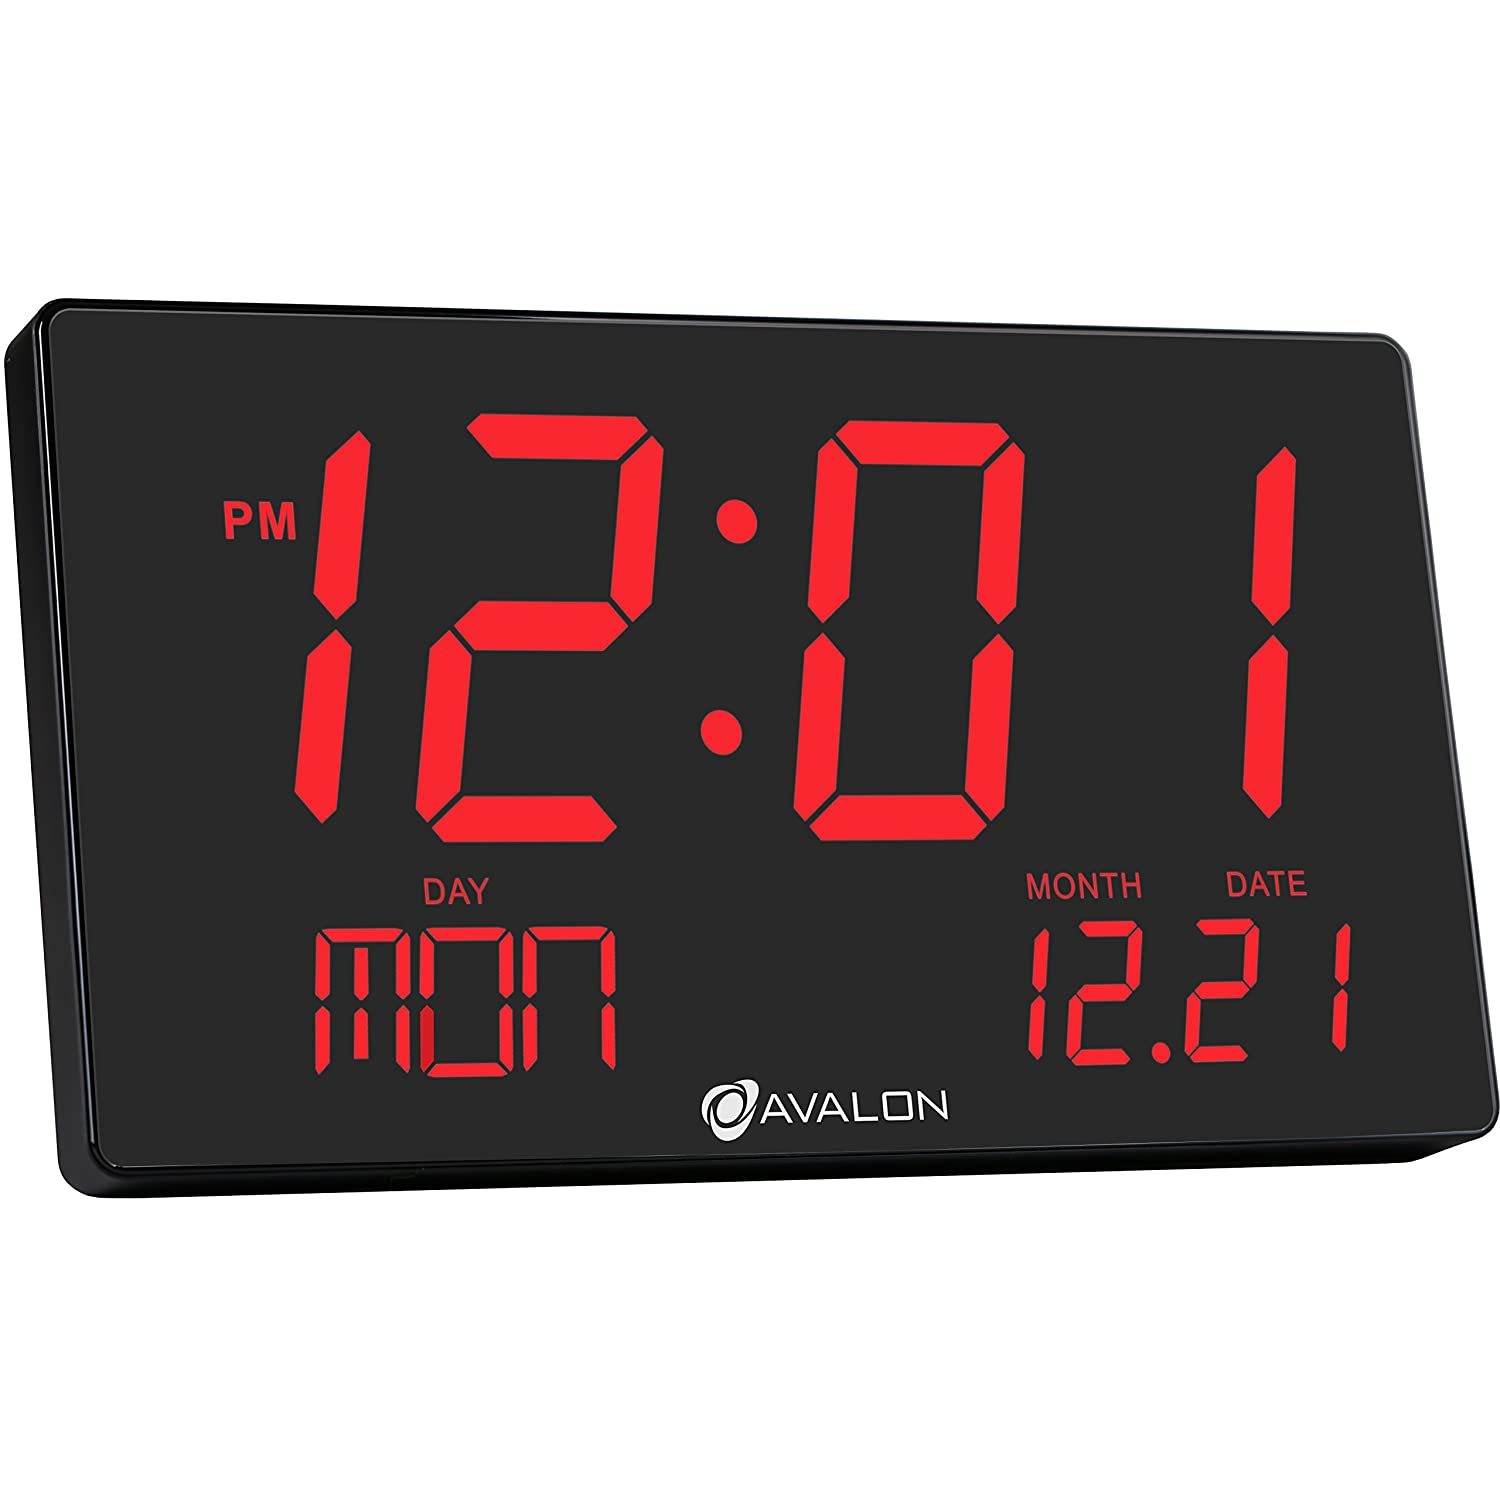 Avalon oversized led digital clock extra large display easy to read 3 inch dig ebay - Extra large digital wall clock ...